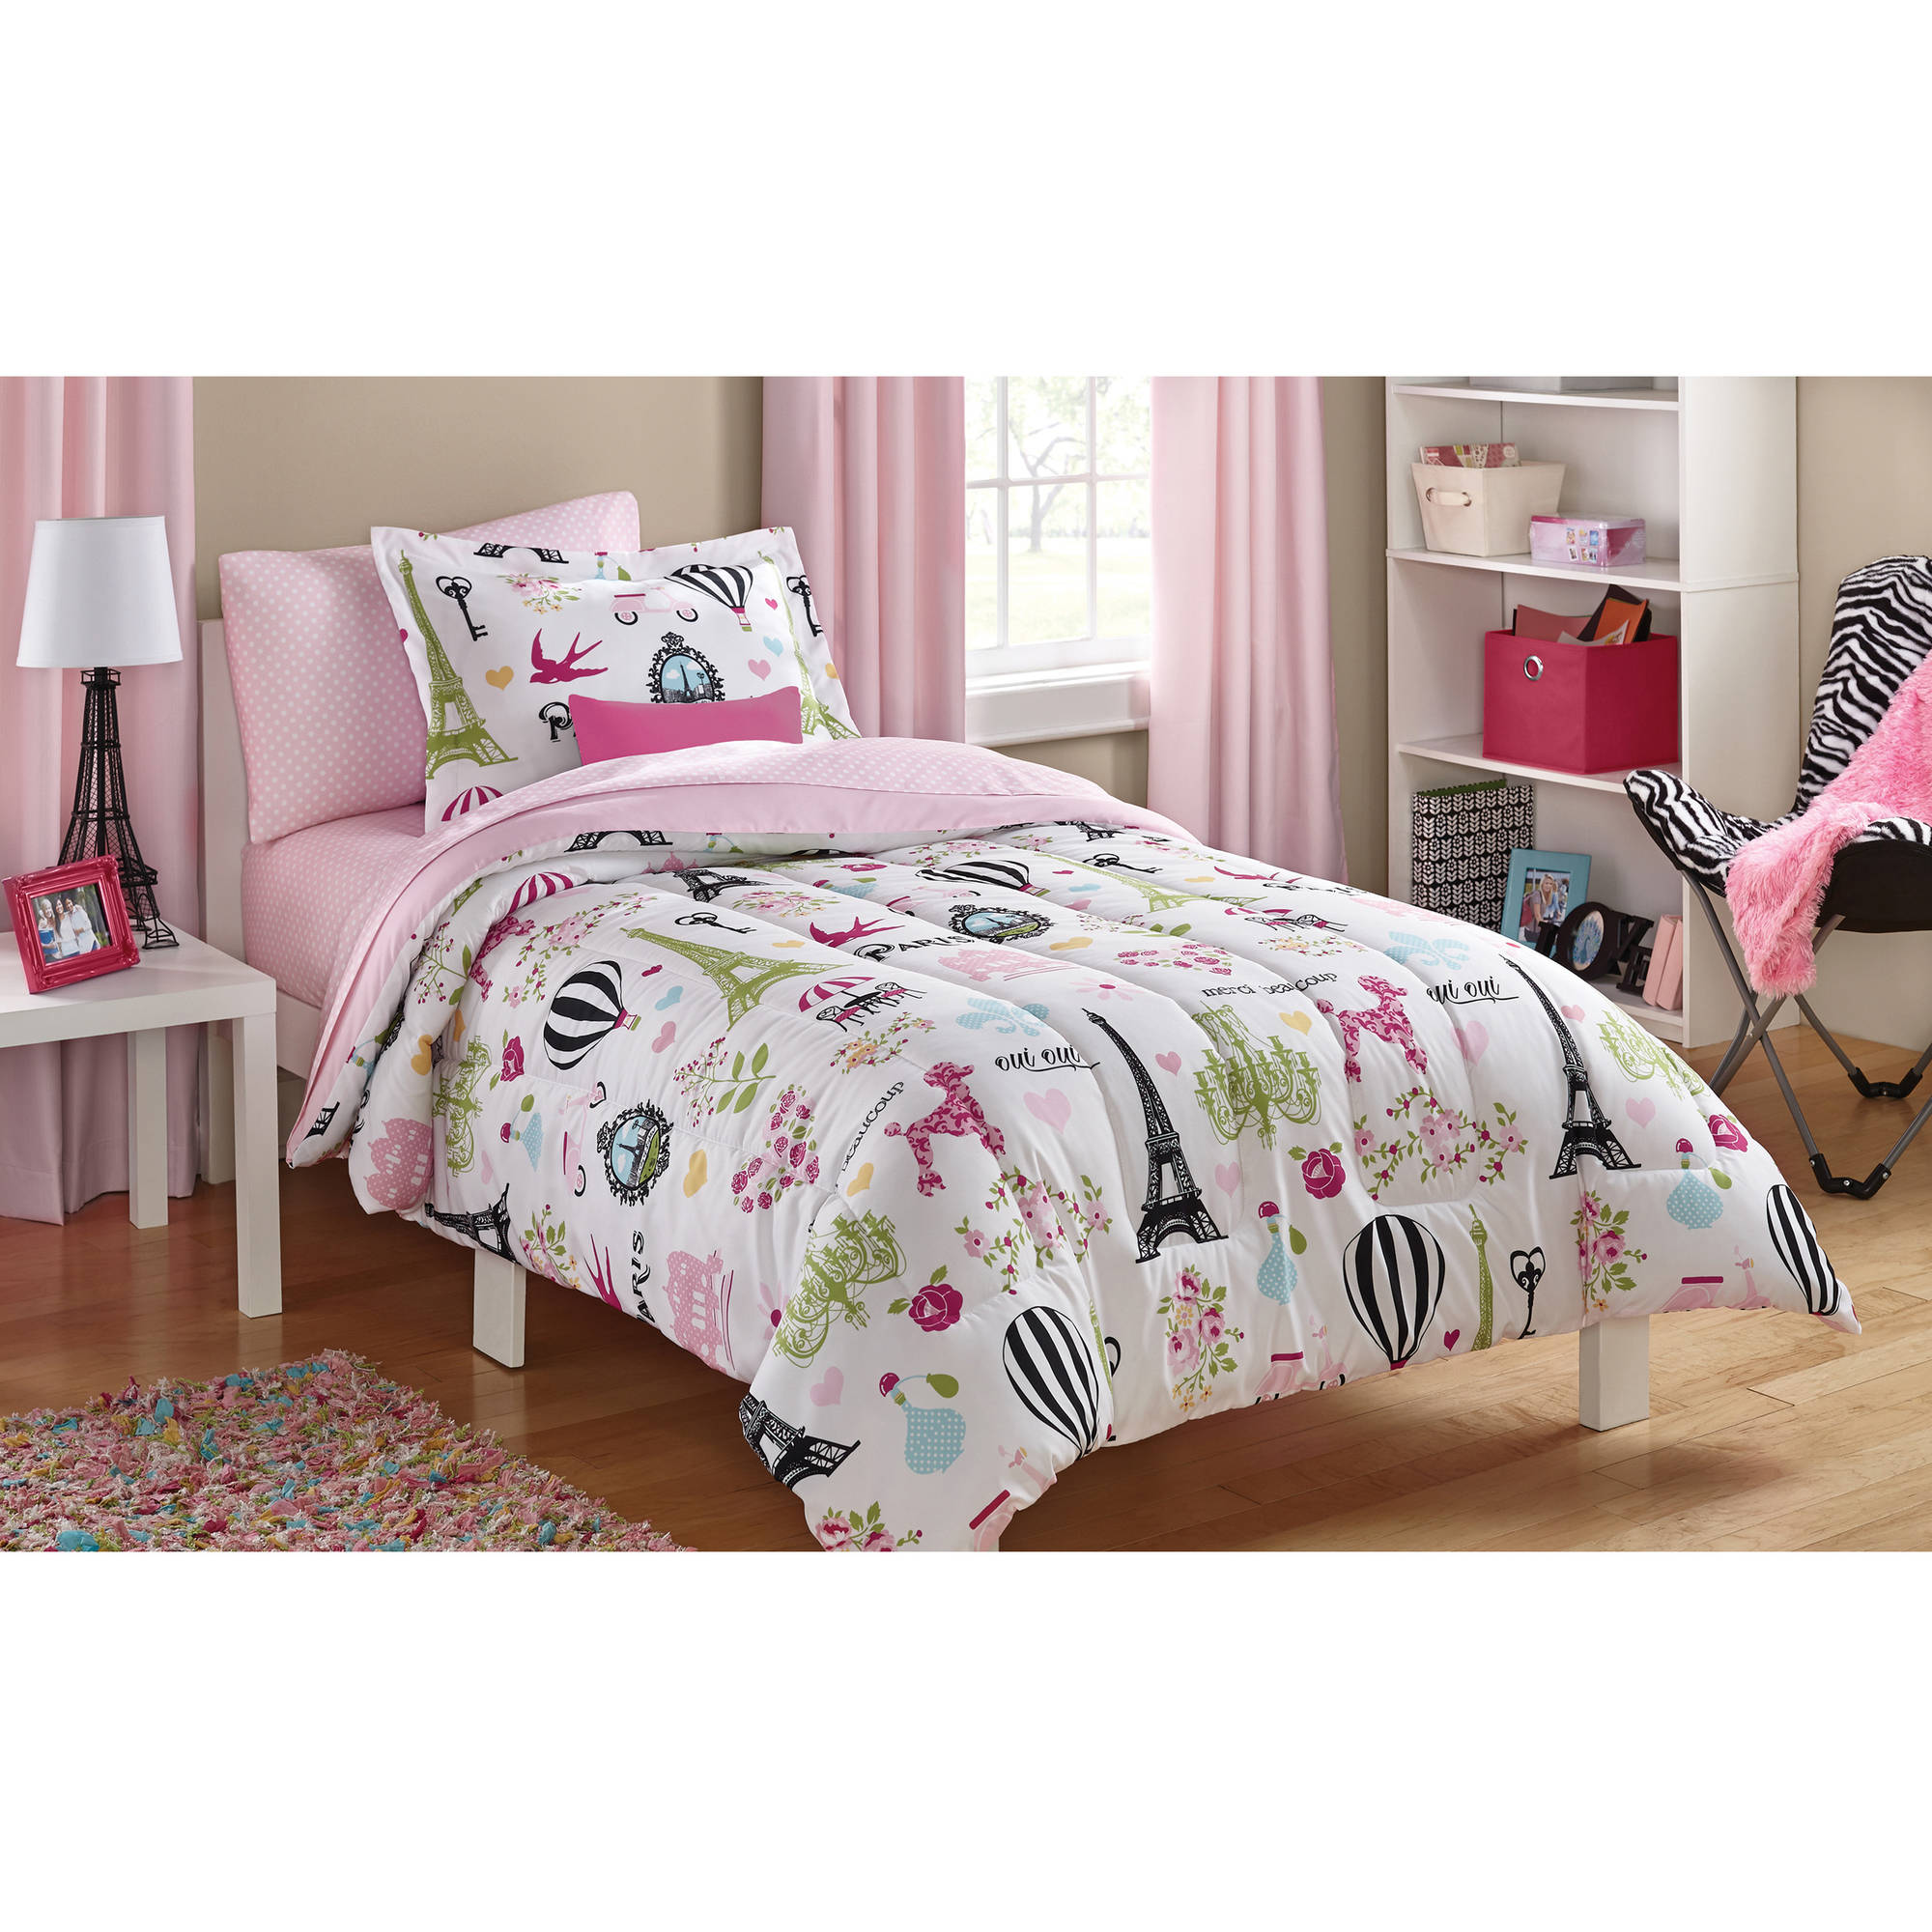 Mainstays Kids Paris Bed in a Bag Bedding Set